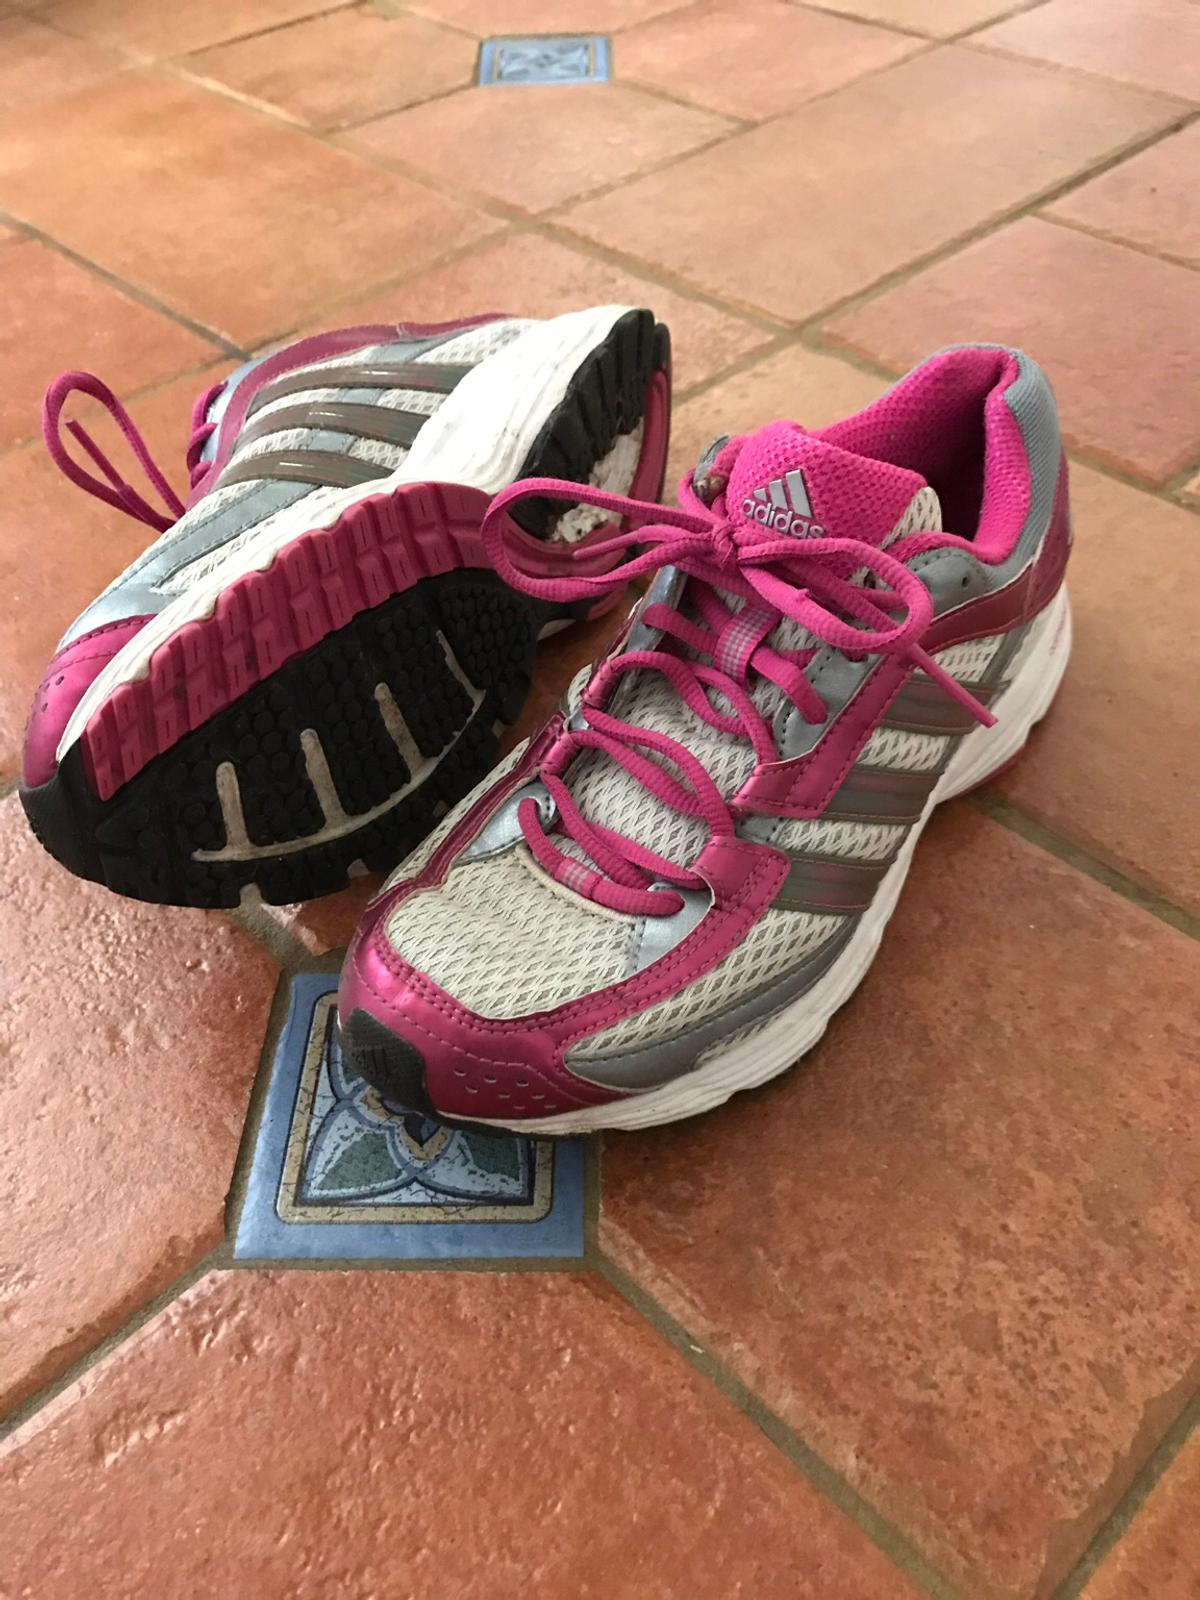 interior Cuervo Soportar  Adidas 'adiprene' pink and white trainers 5 in SO40 Forest for £5.00 for  sale | Shpock